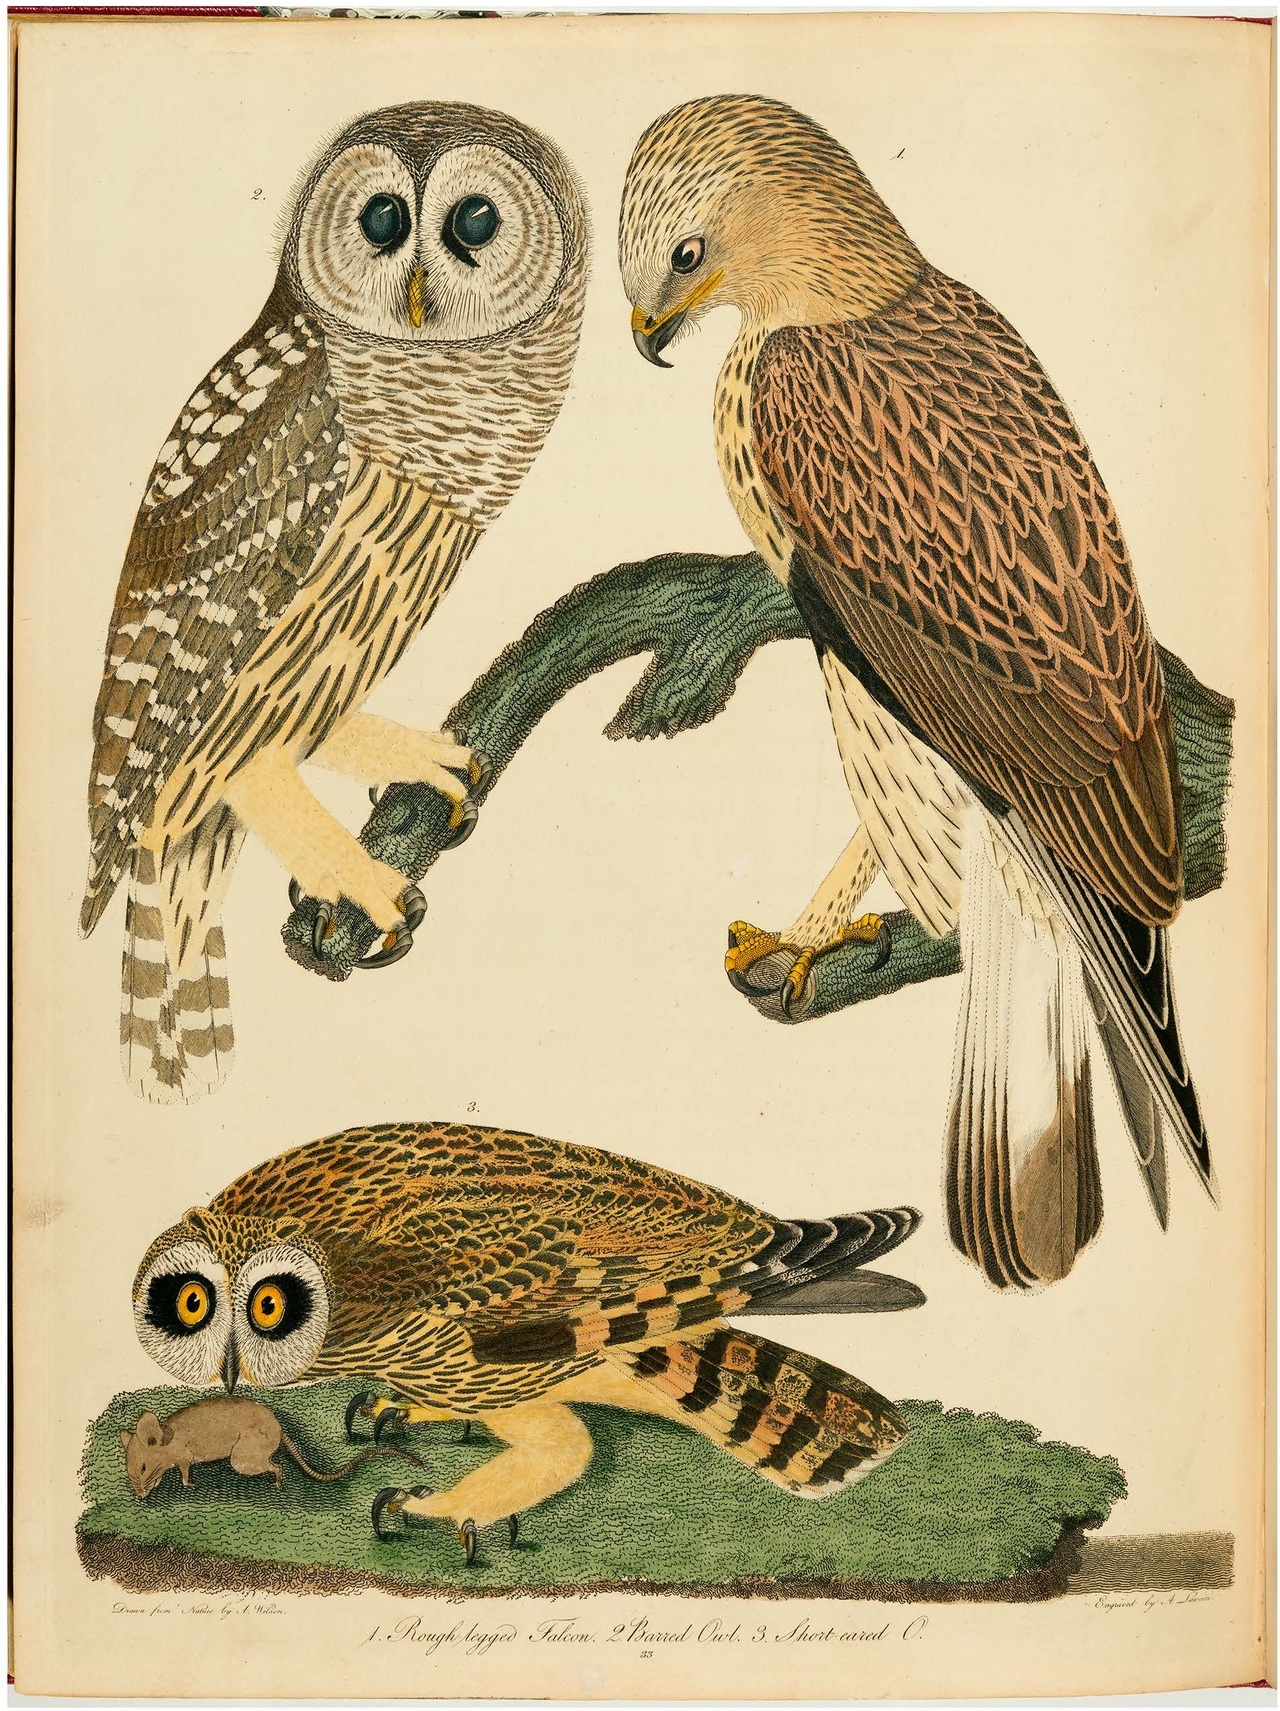 American ornithology or The natural history of the birds of the United States